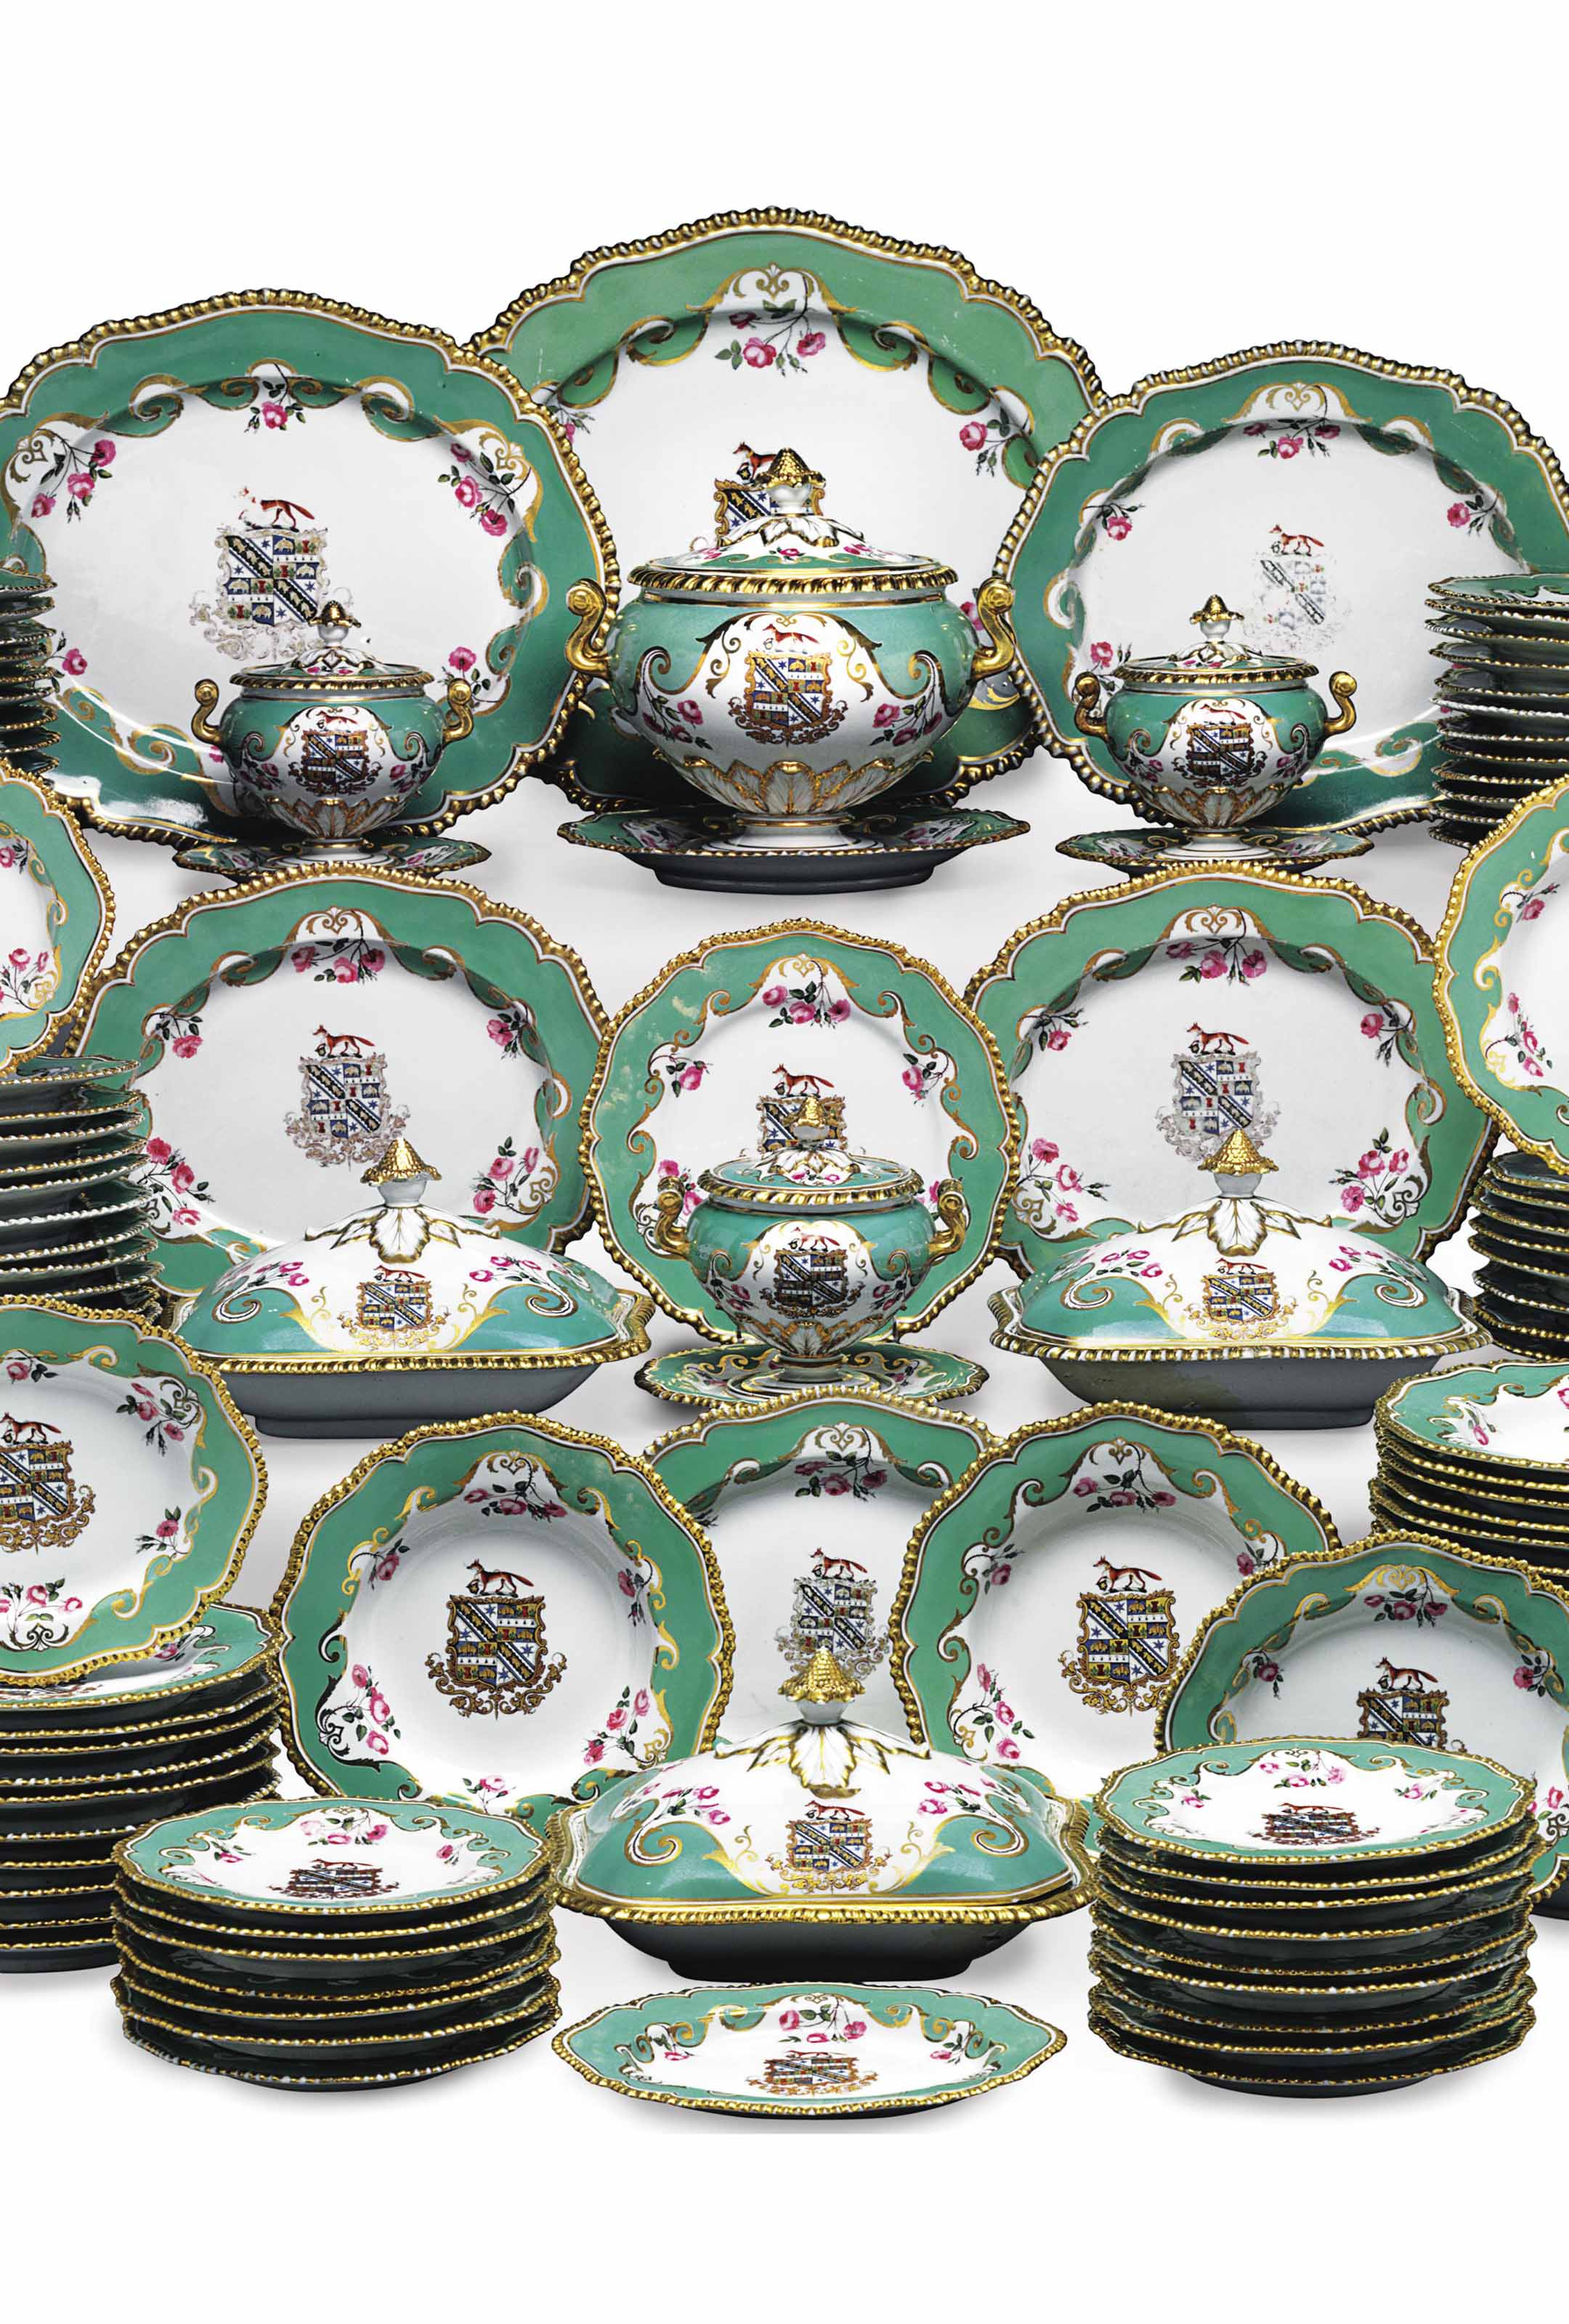 A Worcester porcelain (Flight, Barr & Barr) armorial apple-green-ground part service, circa 1824. 22 in (55.8  cm) wide, the largest platter. Sold for $47,500 on 21 March 2015 at Christie's in New York